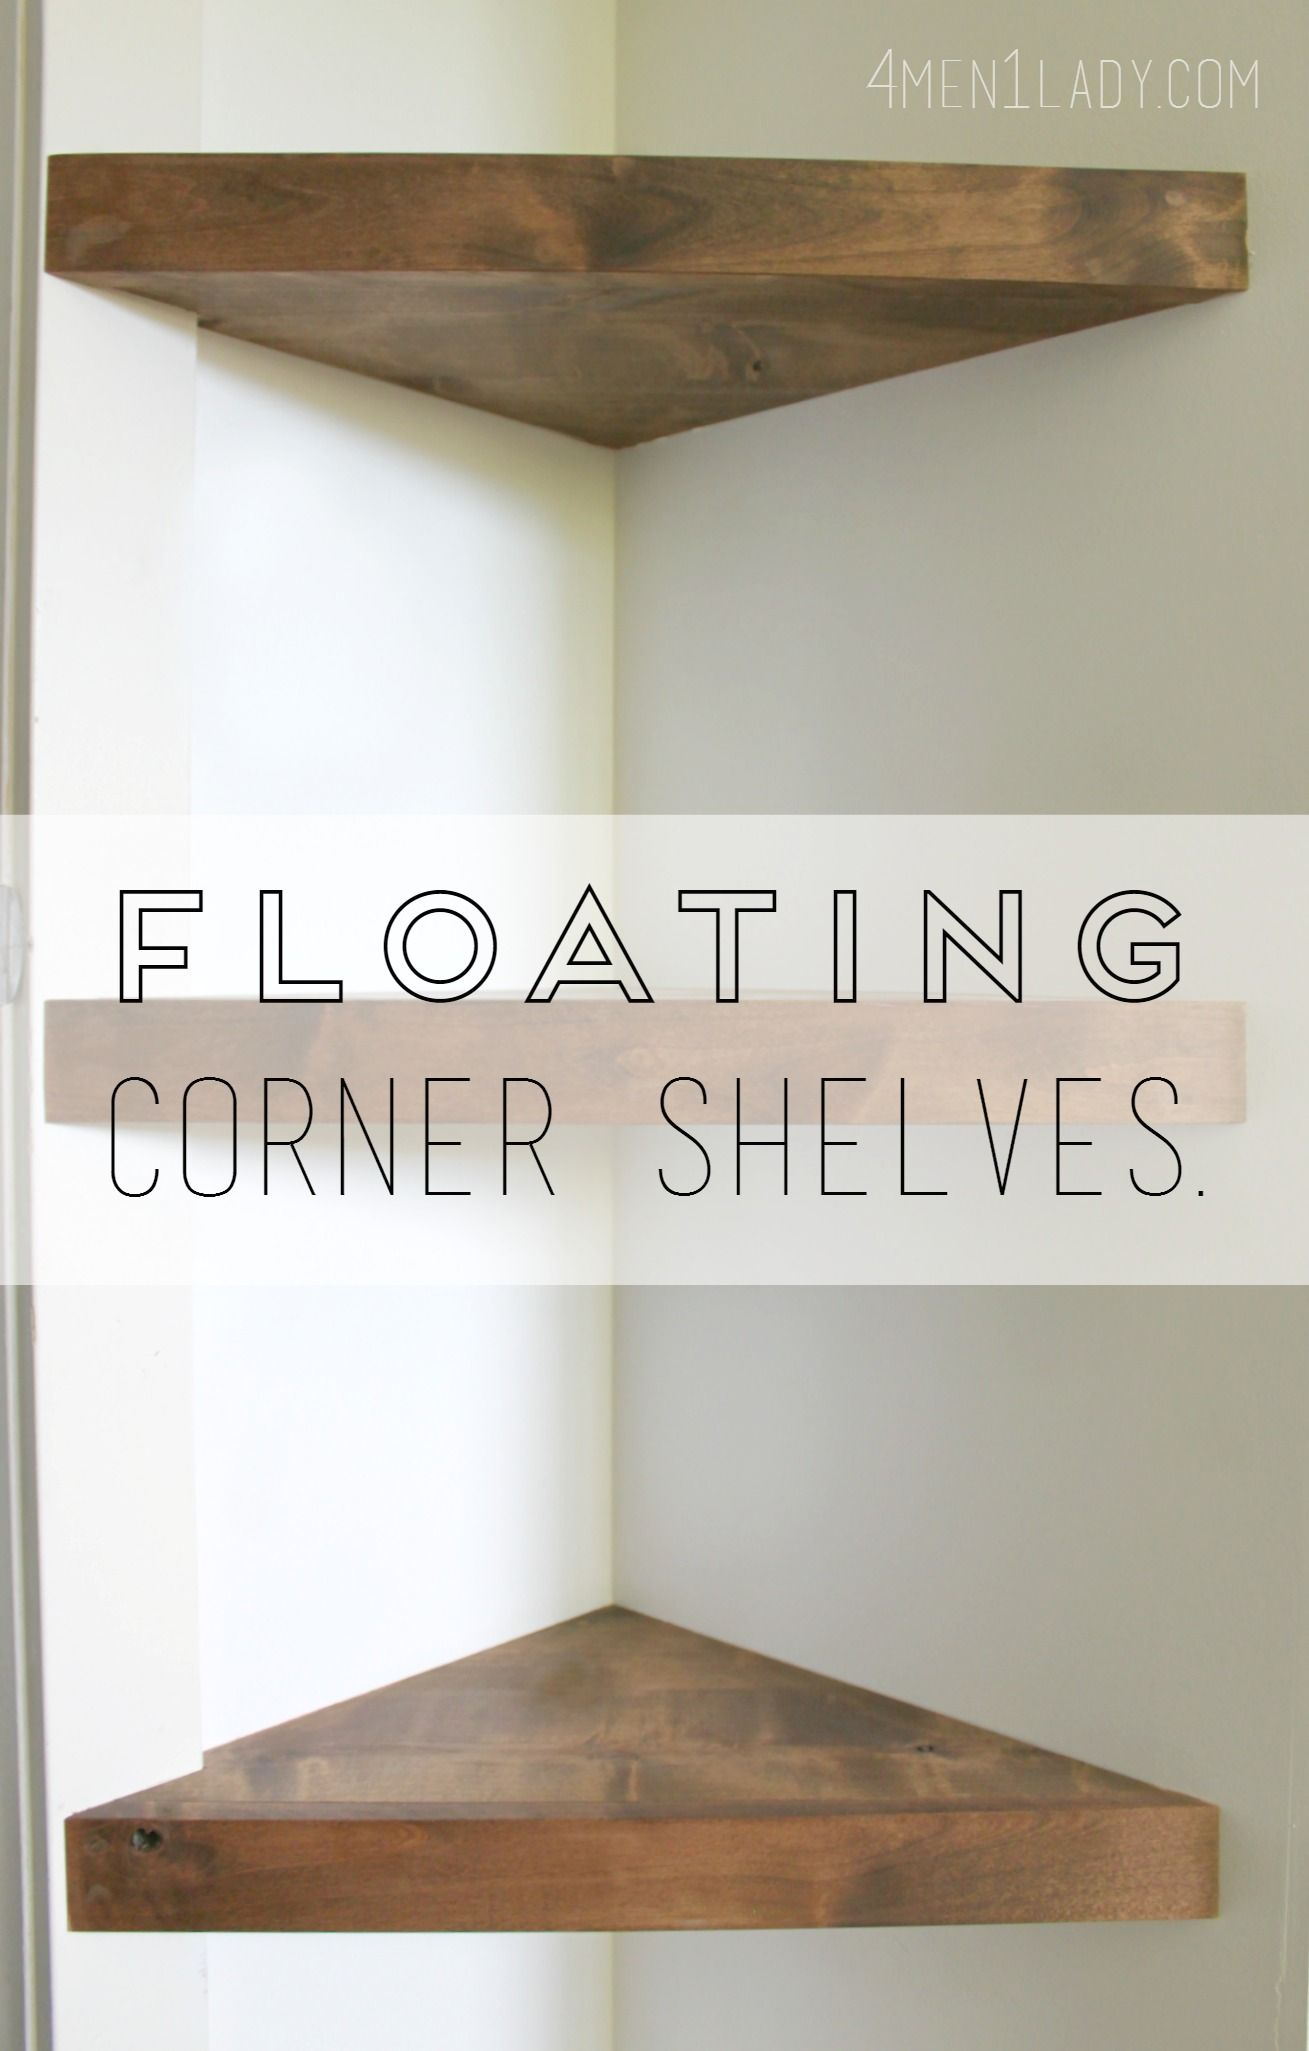 brilliantly creative diy shelving ideas apartment fixes floating corner shelf plans img shelves kitchen bedroom rustic oak beams affordable bookshelves brisbane mobile cart narrow